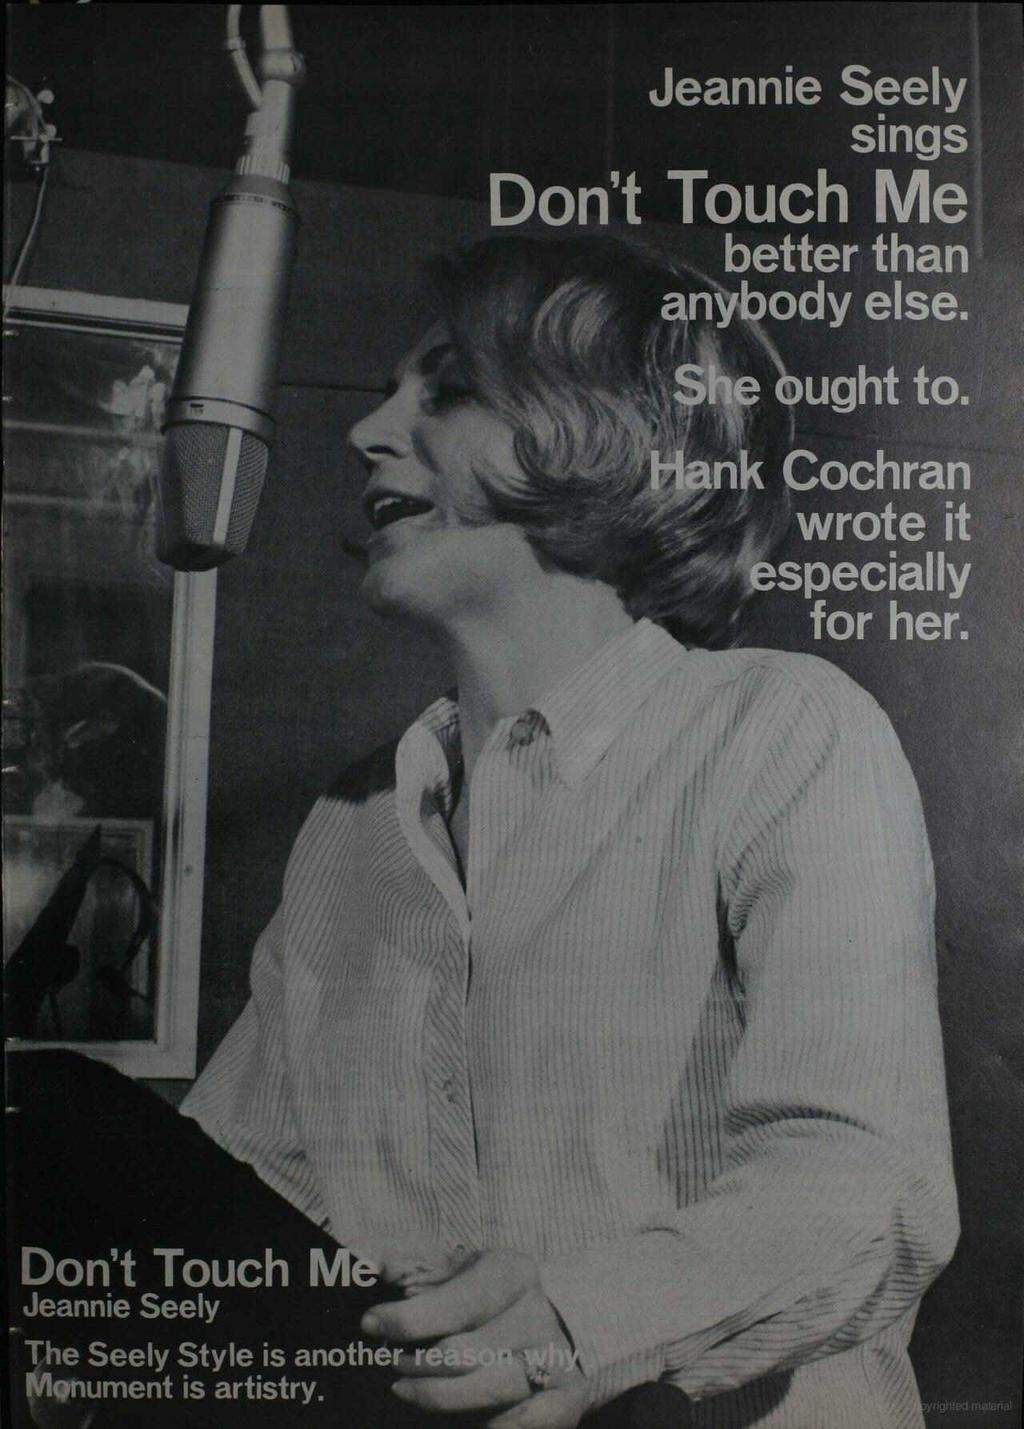 Jeannie Seely sings Don't Touch Me better than anybody else. 4.4 ought to.